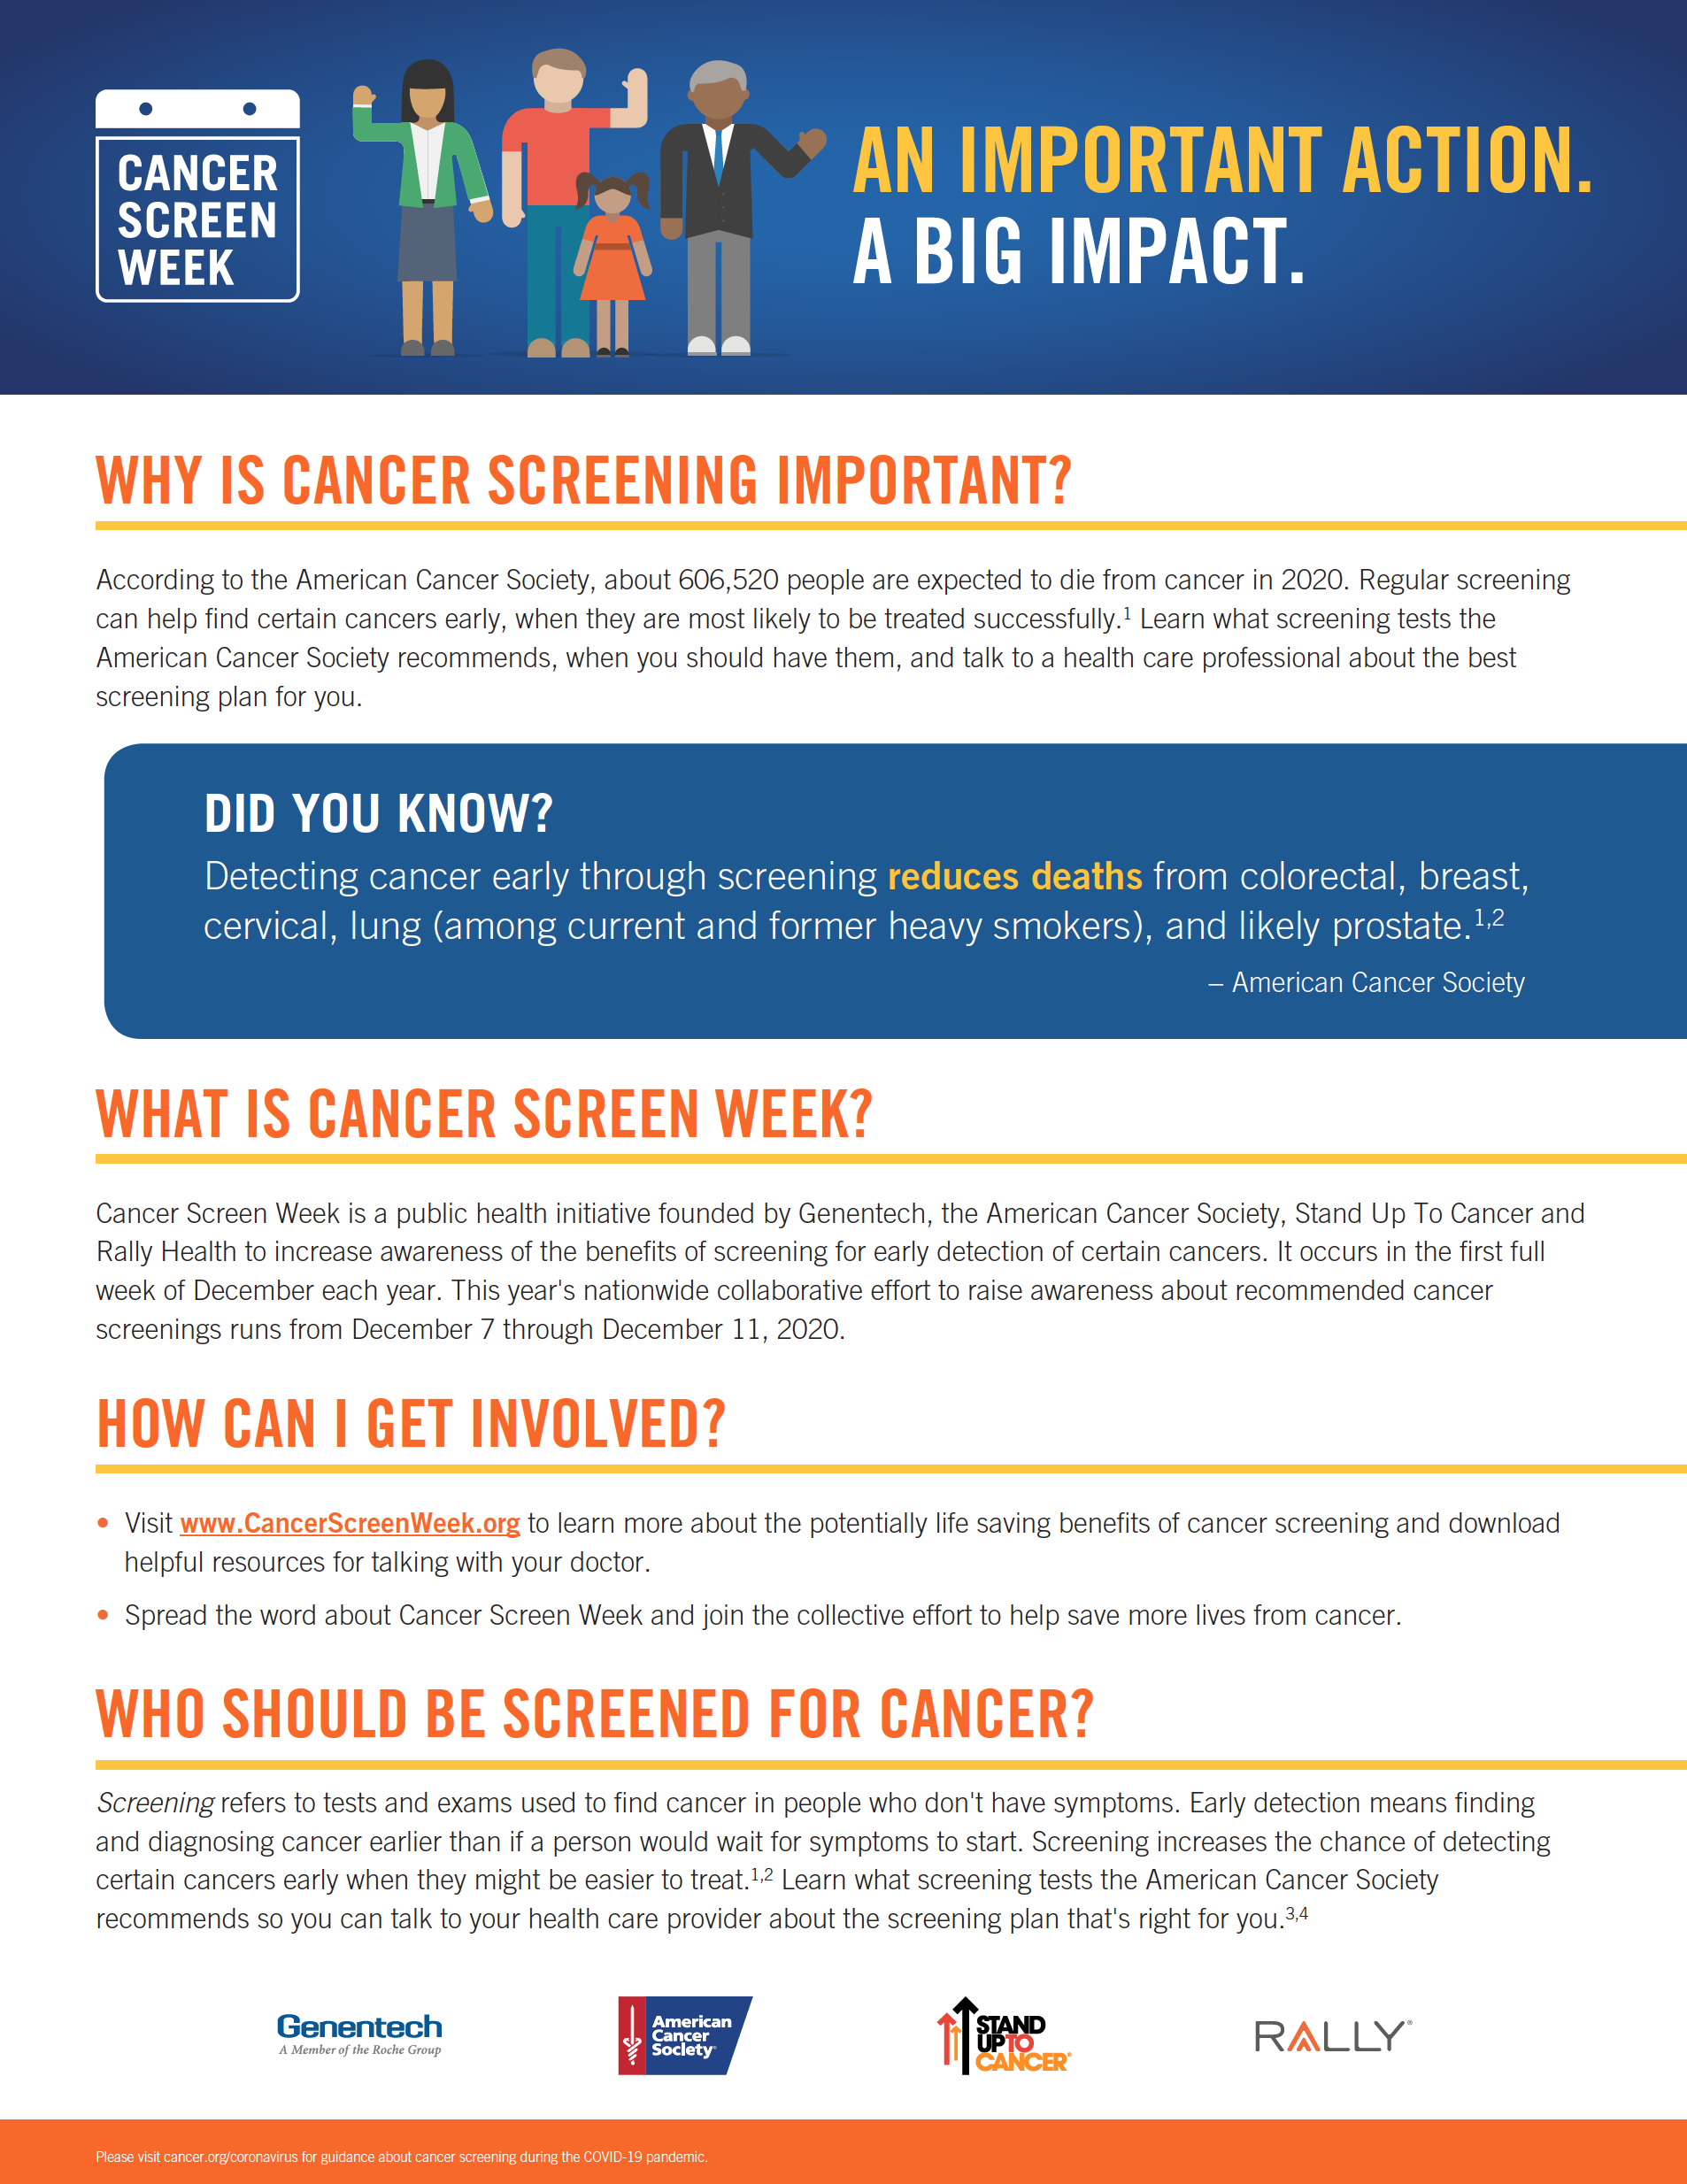 Cancer Screen Week 2020